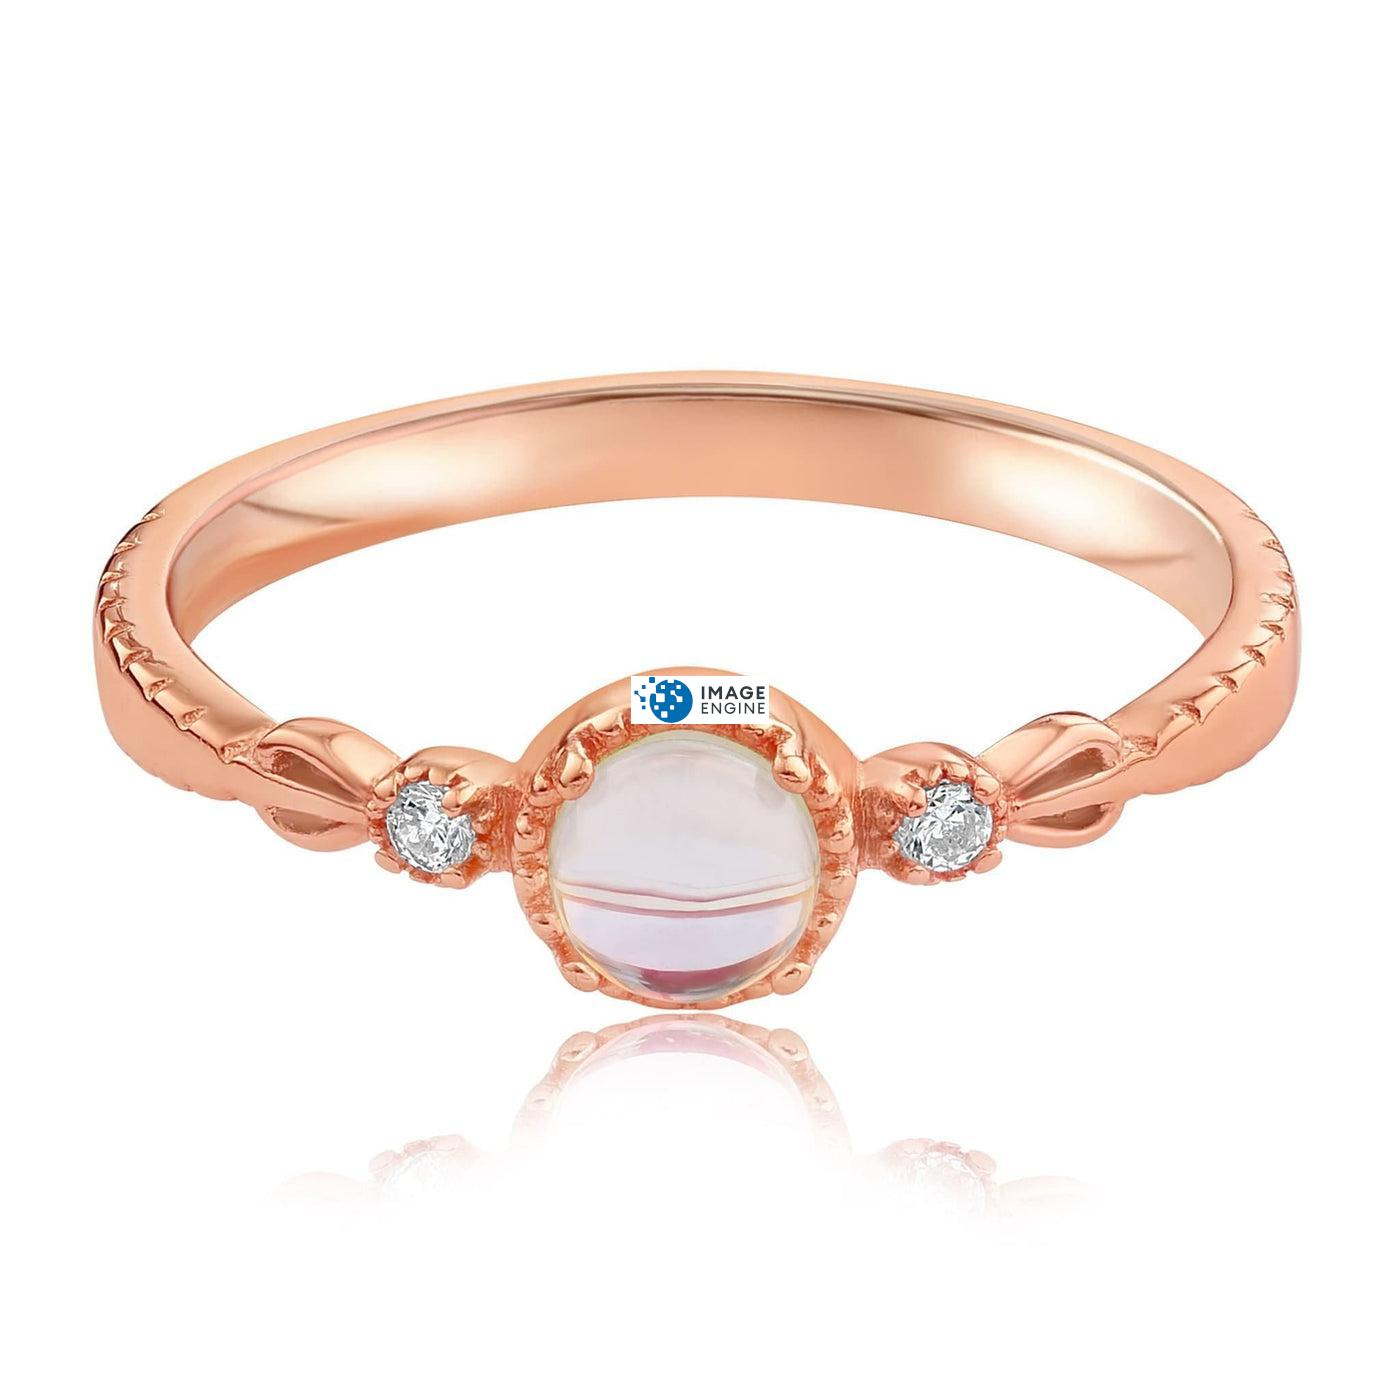 Mystic Moonstone Mood Ring - Front View Facing Down - 18K Rose Gold Vermeil